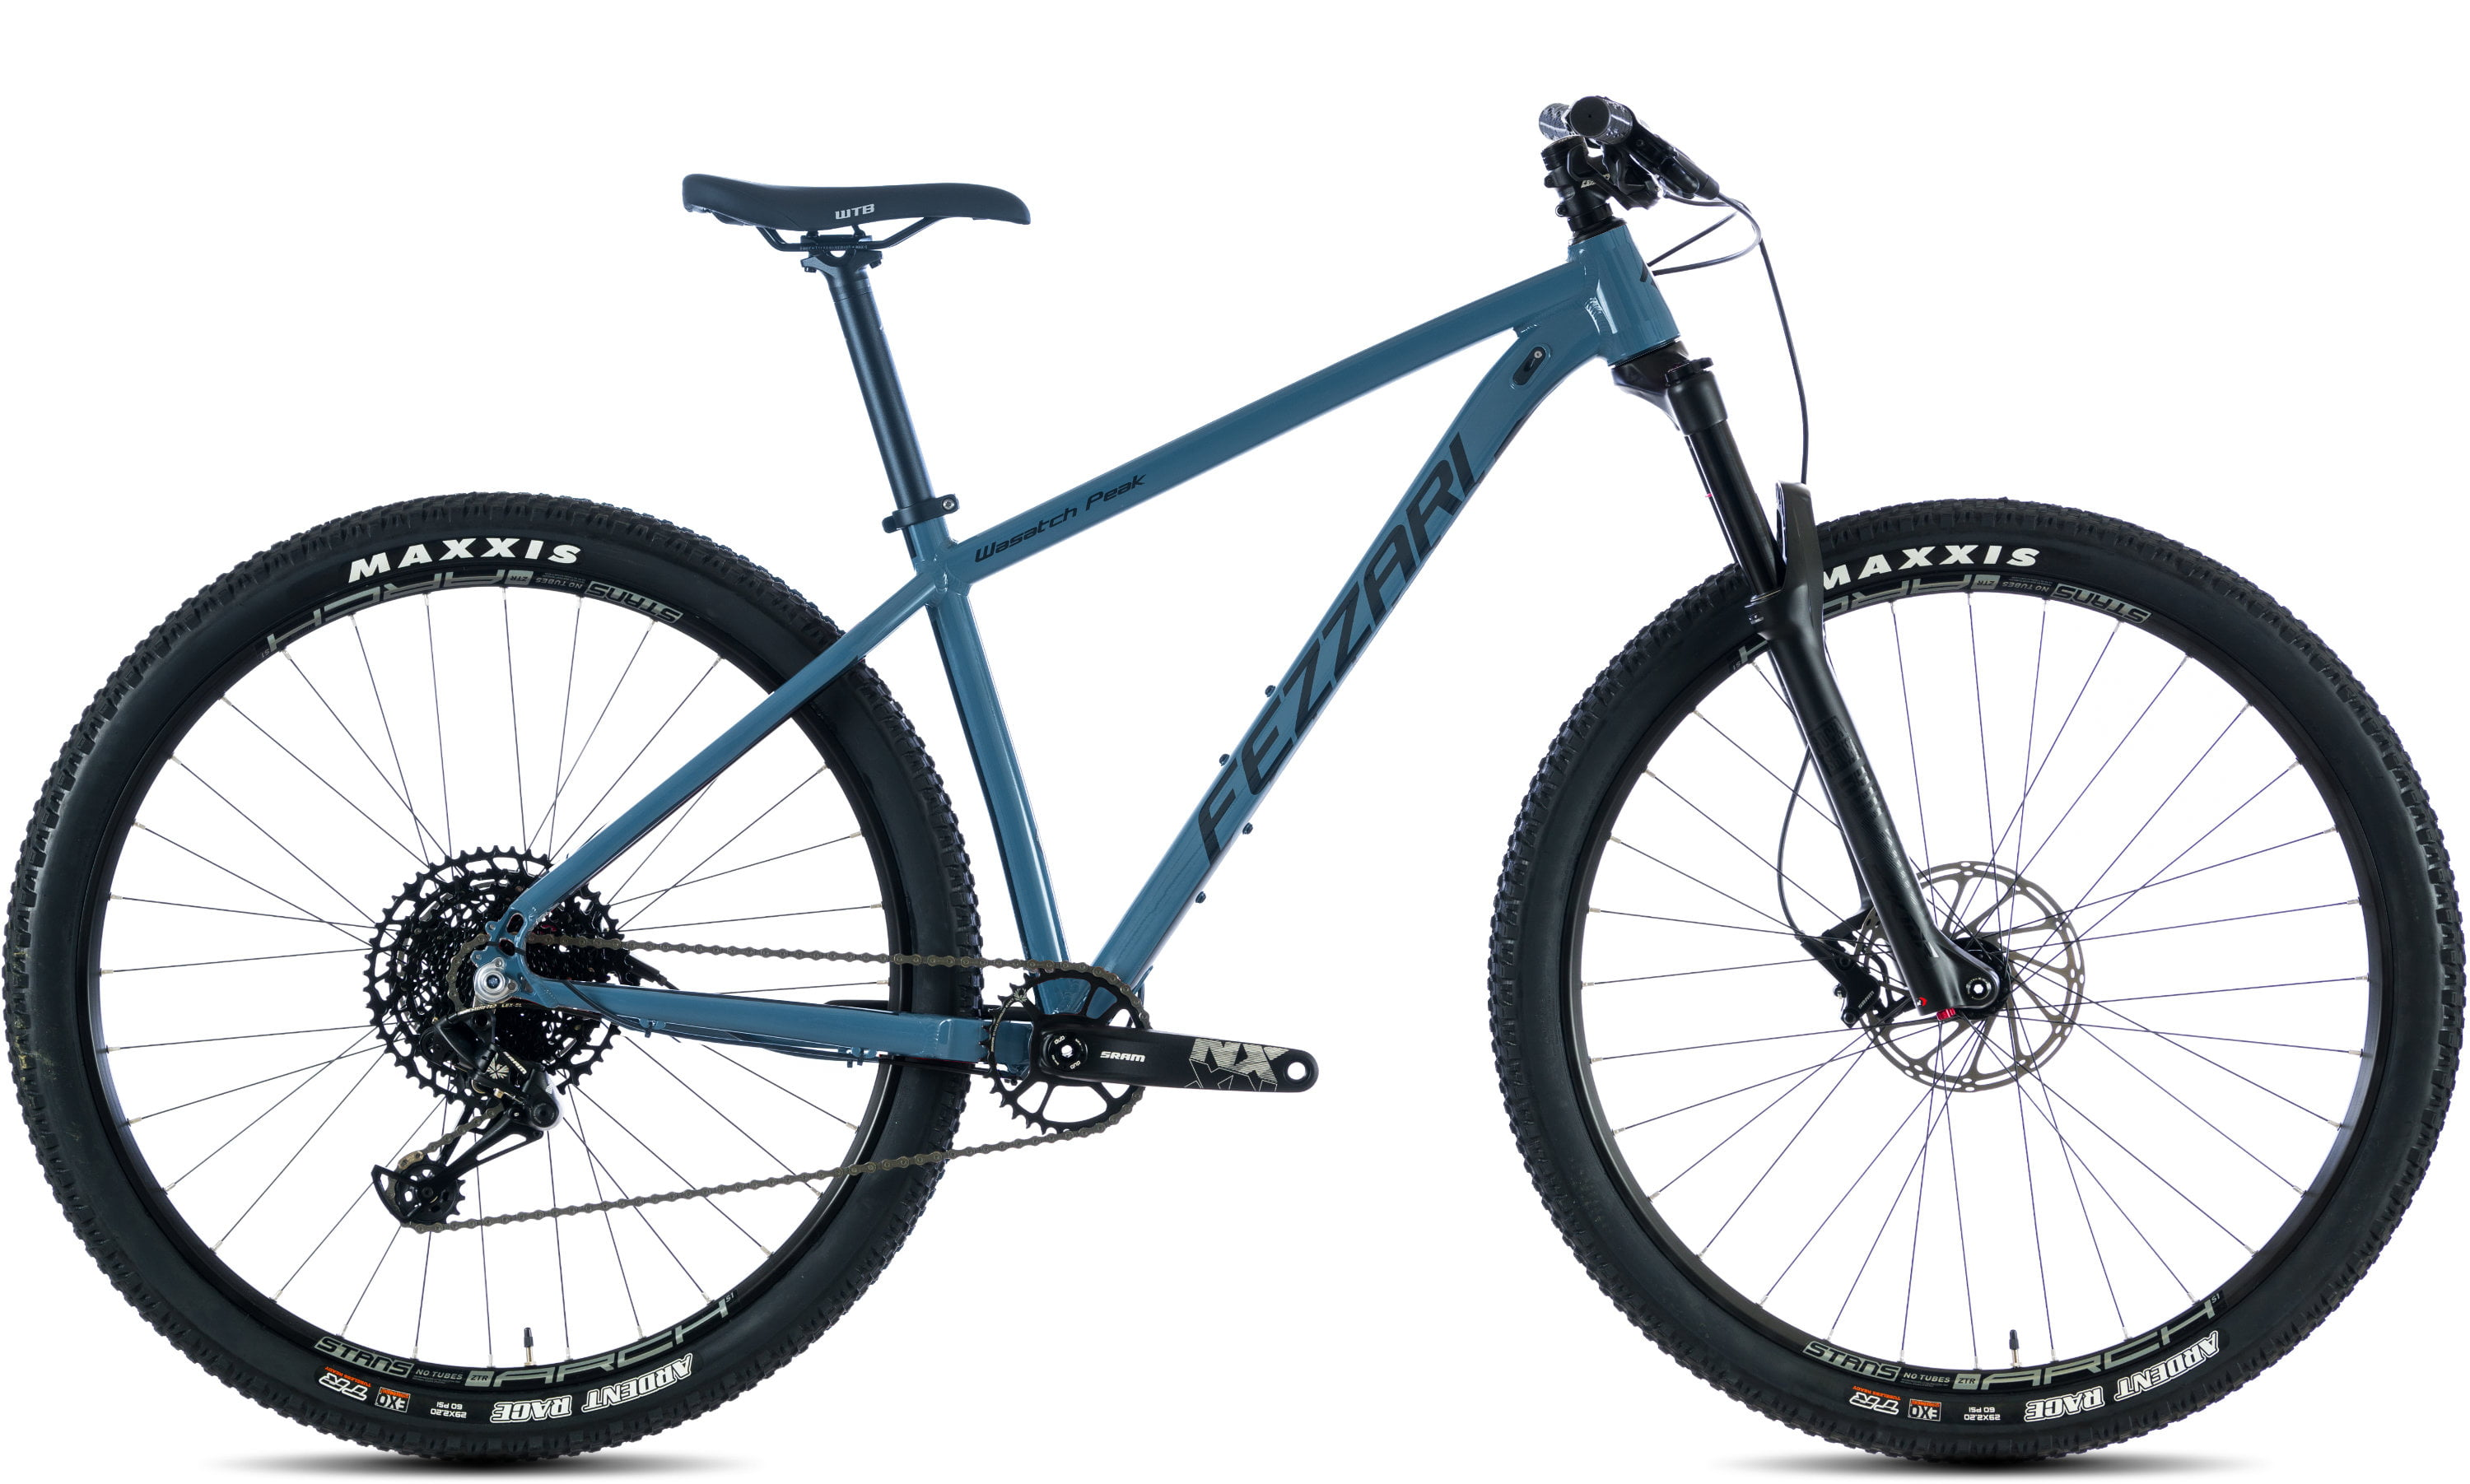 New Fezzari Wasatch Peak XC Hardtail for 2019 - Everyday MTB